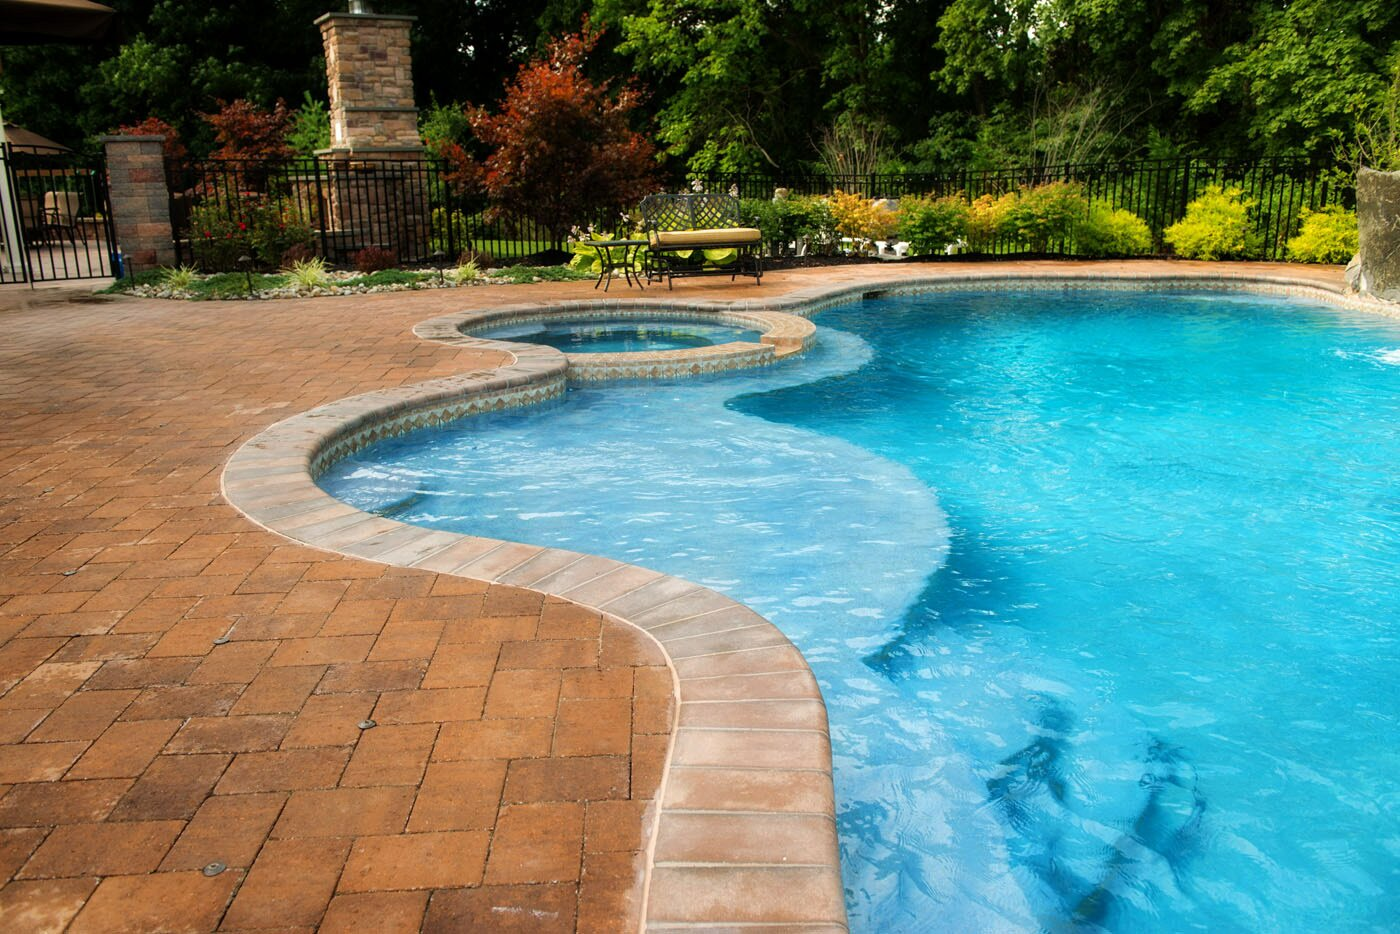 Pool Beton Concrete Swimming Pool Finish Options - Anthony & Sylvan Pools